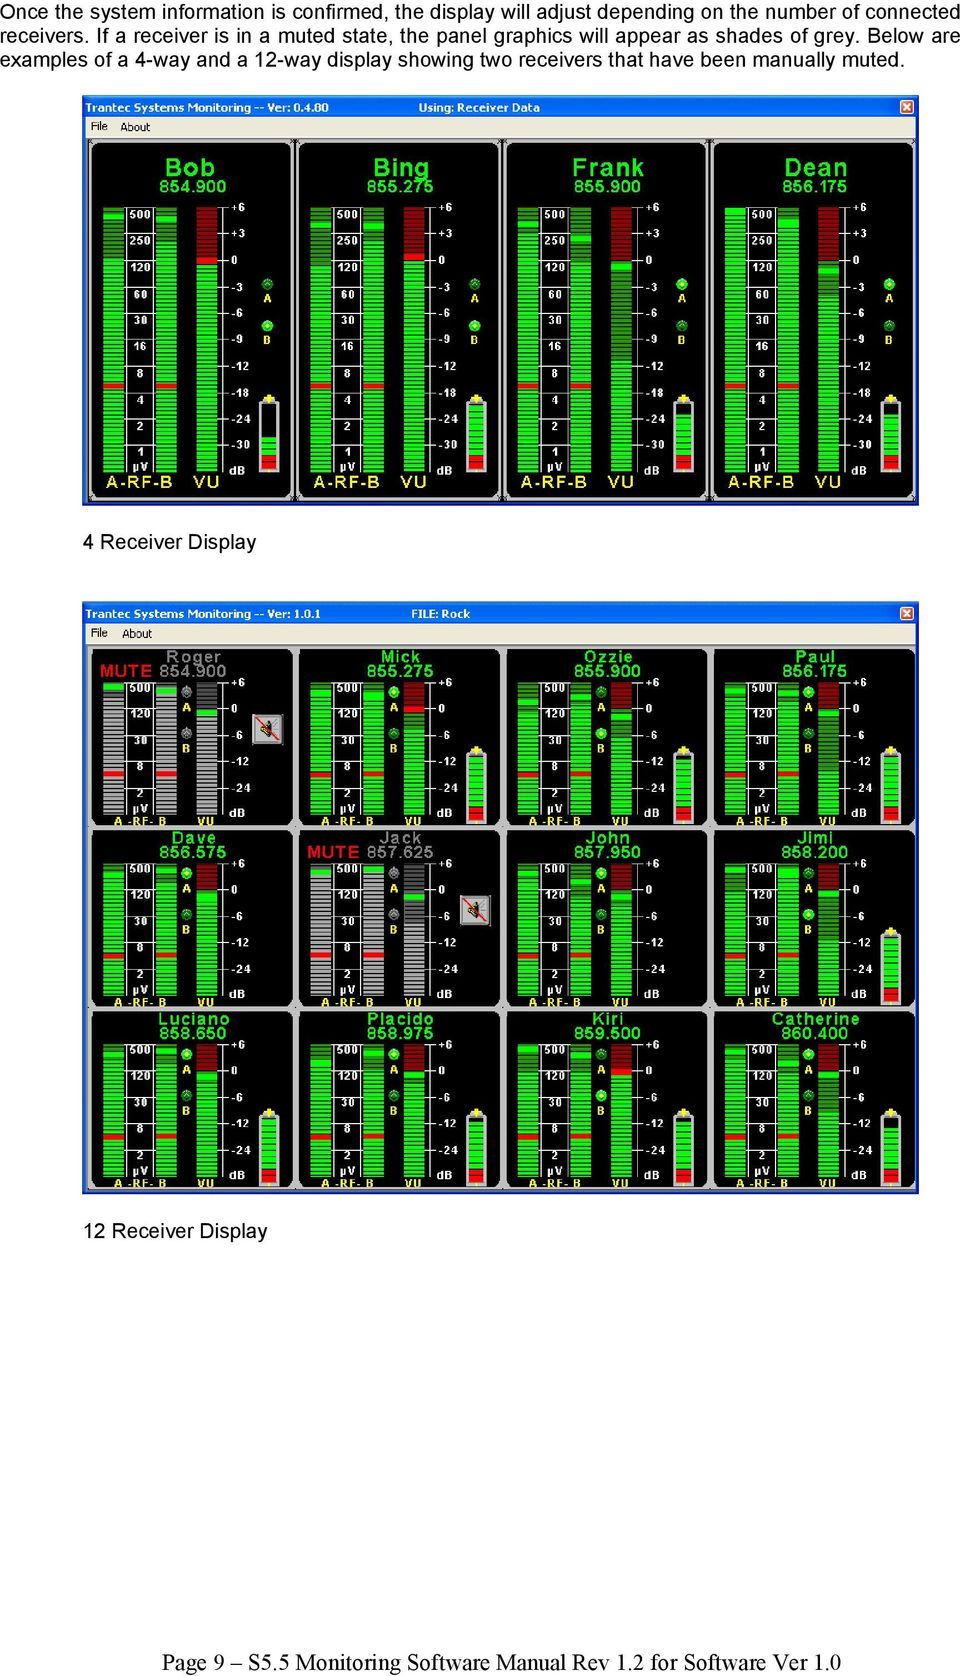 Below are examples of a 4-way and a 12-way display showing two receivers that have been manually muted.